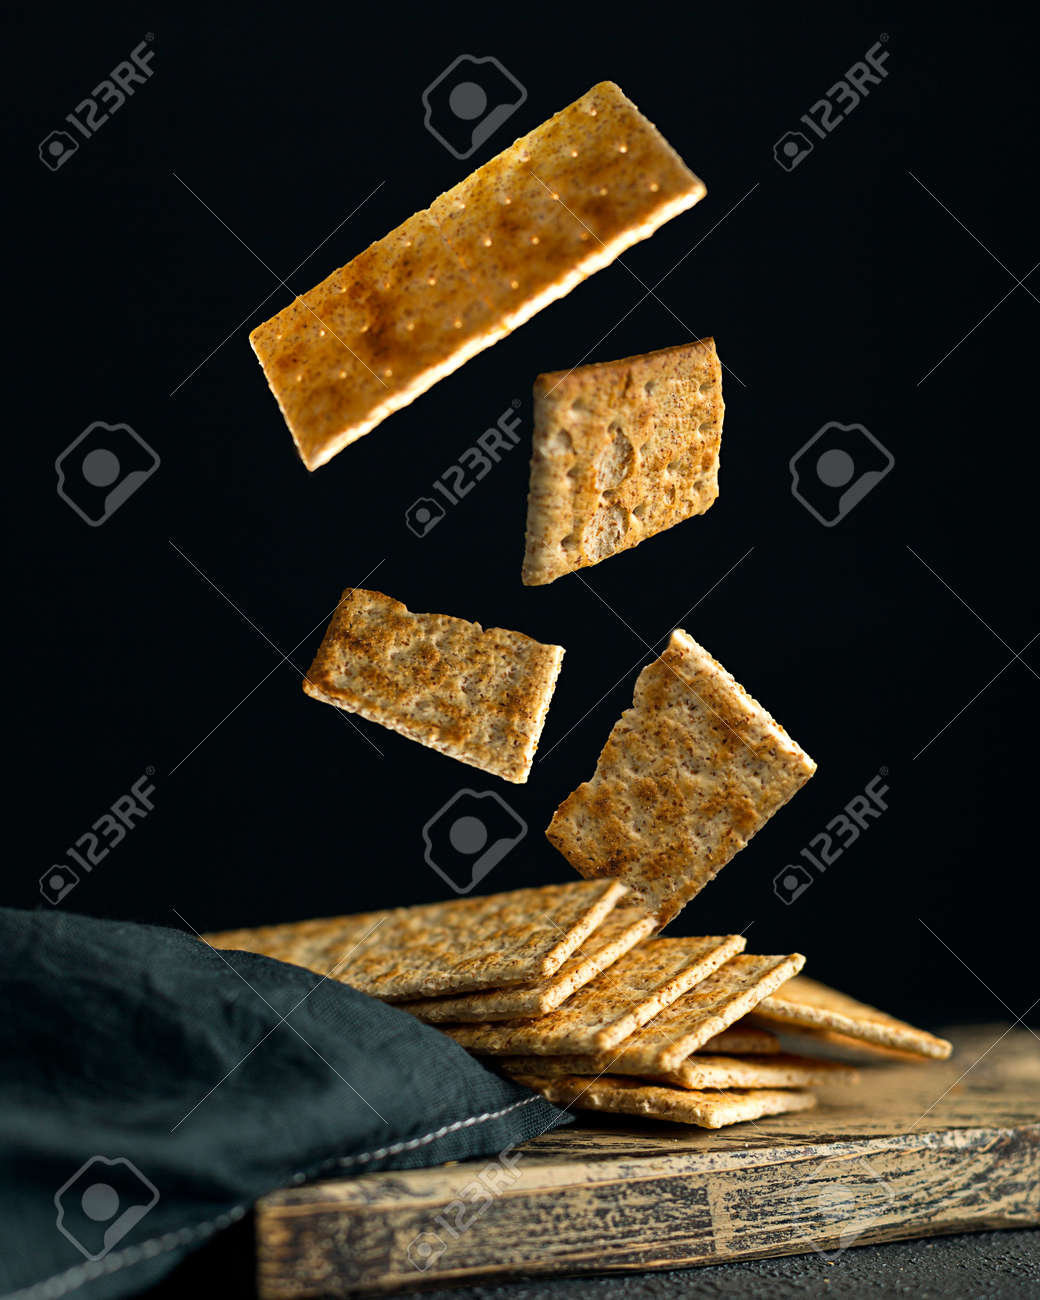 Creative concept with falling food on black backdrop - 173342495